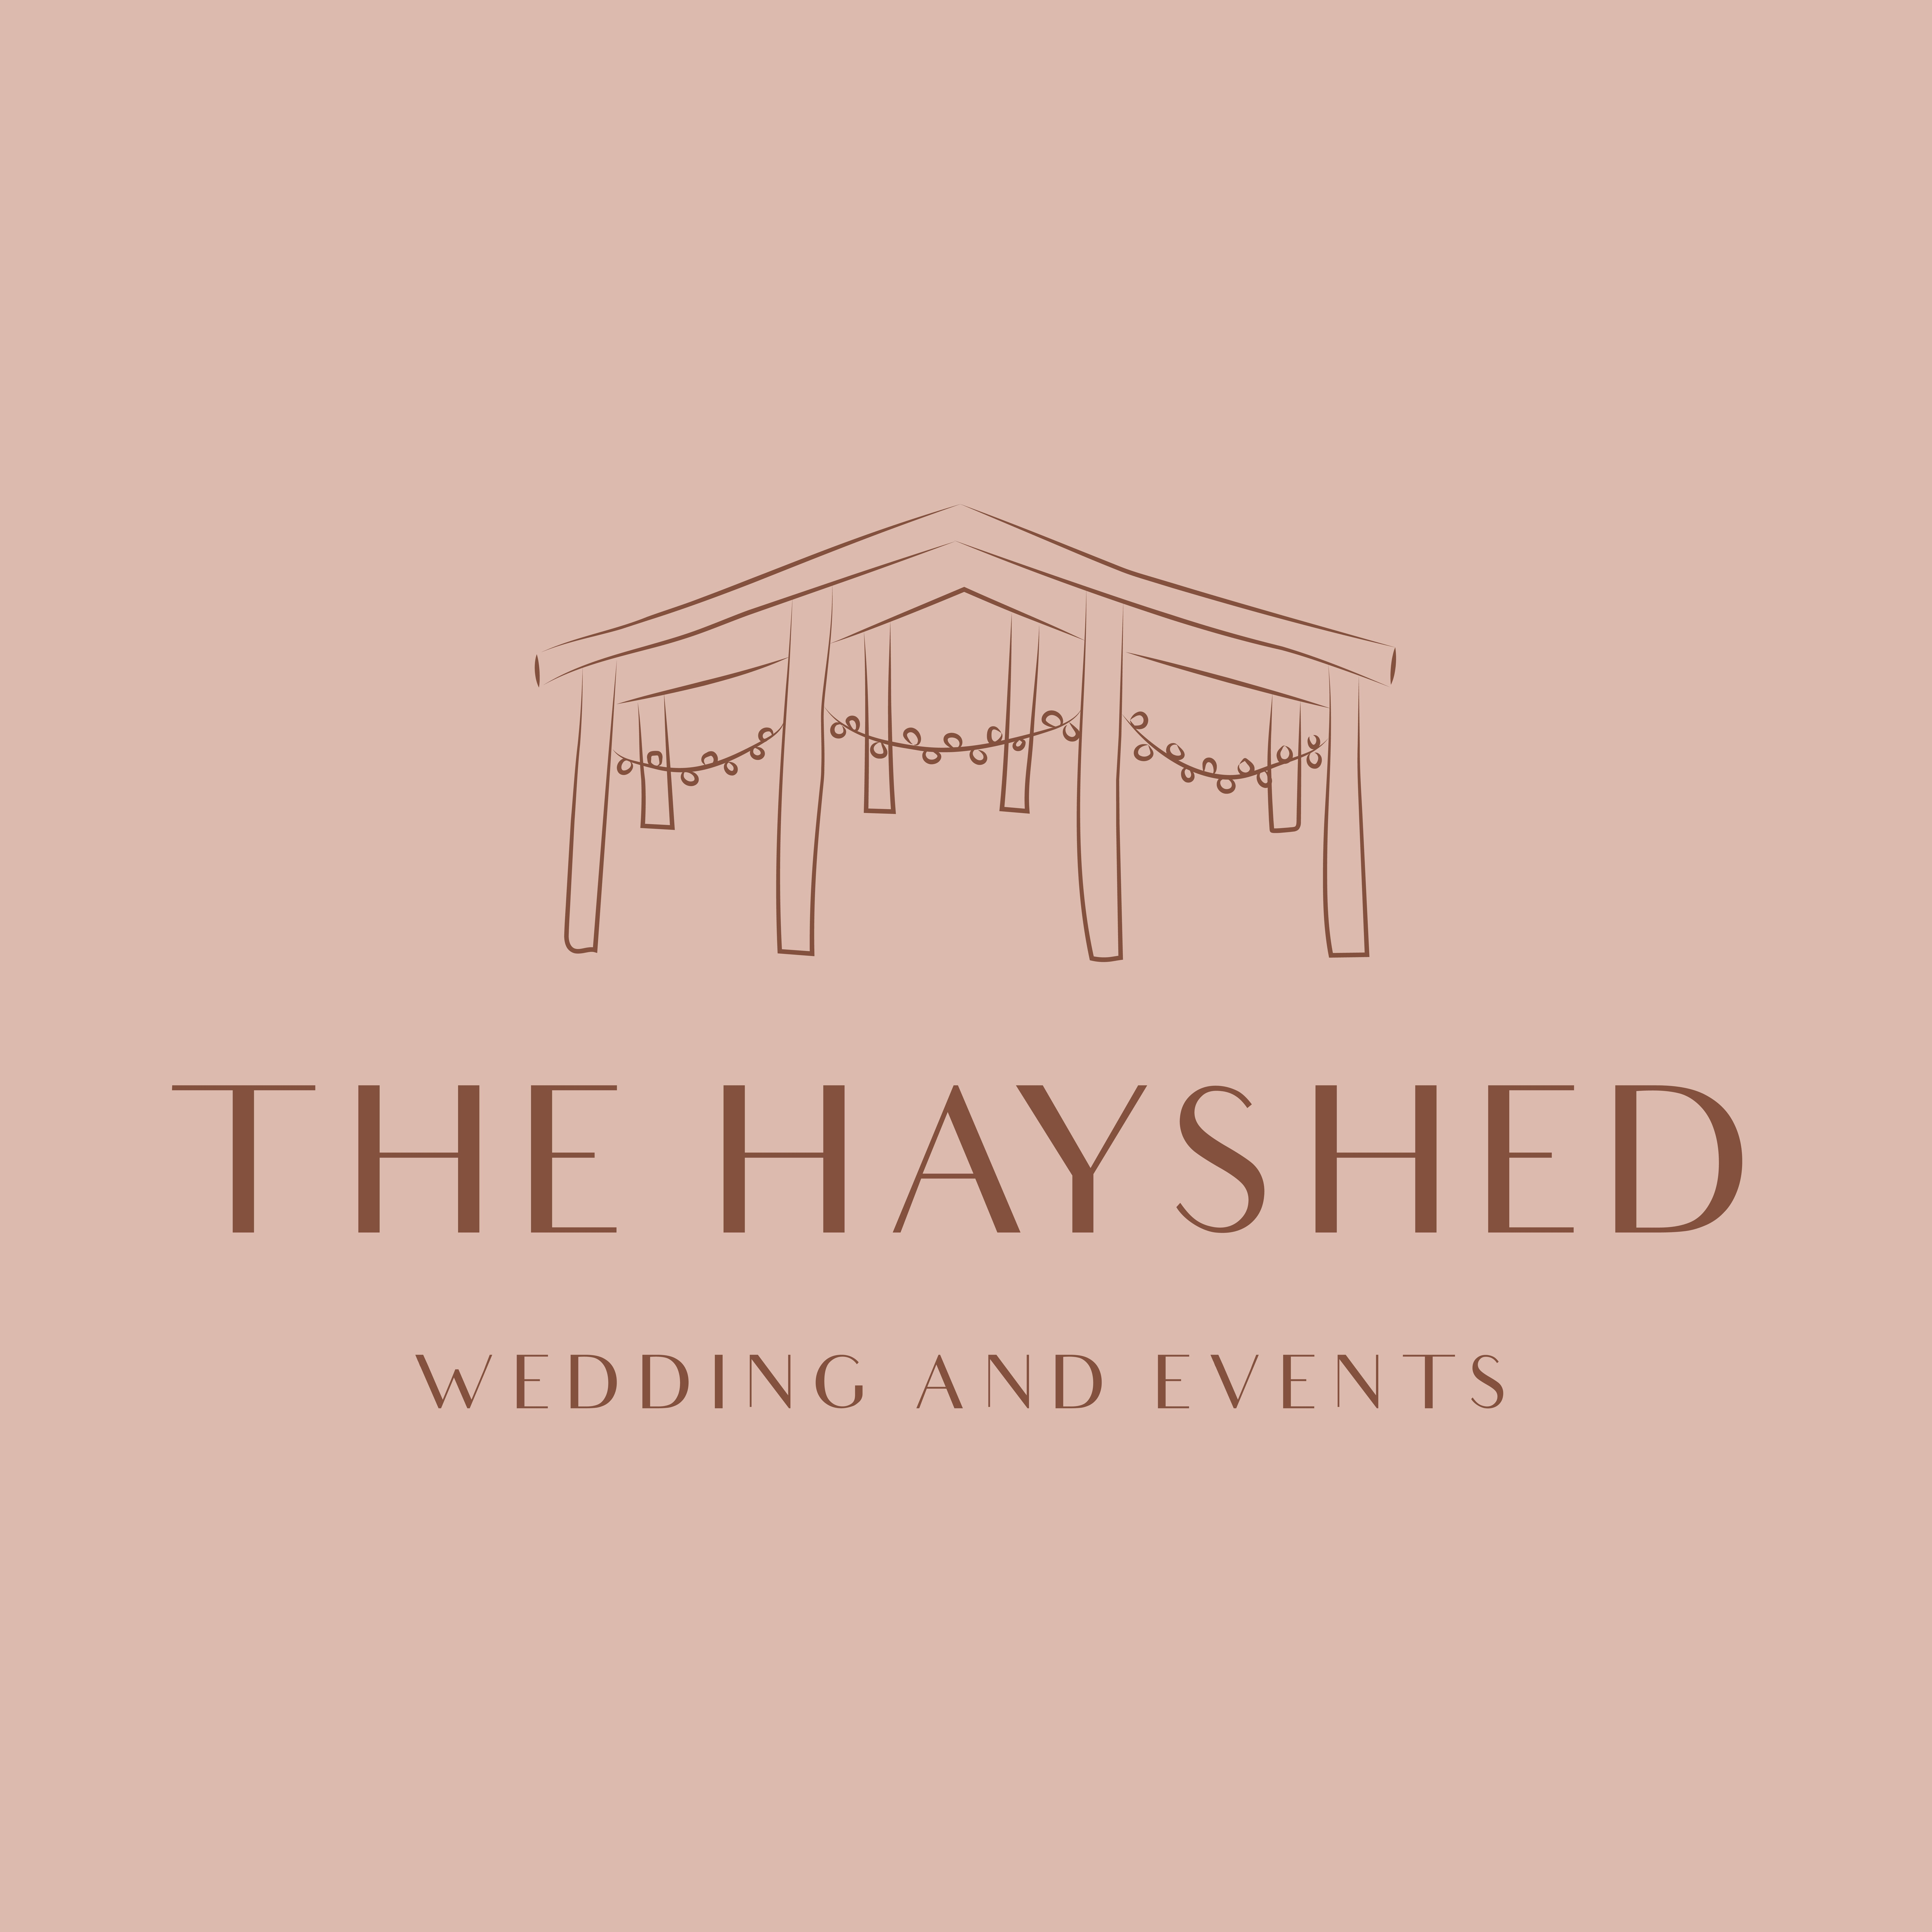 The Hayshed Wedding and Events - Sunshine Coast Tourism